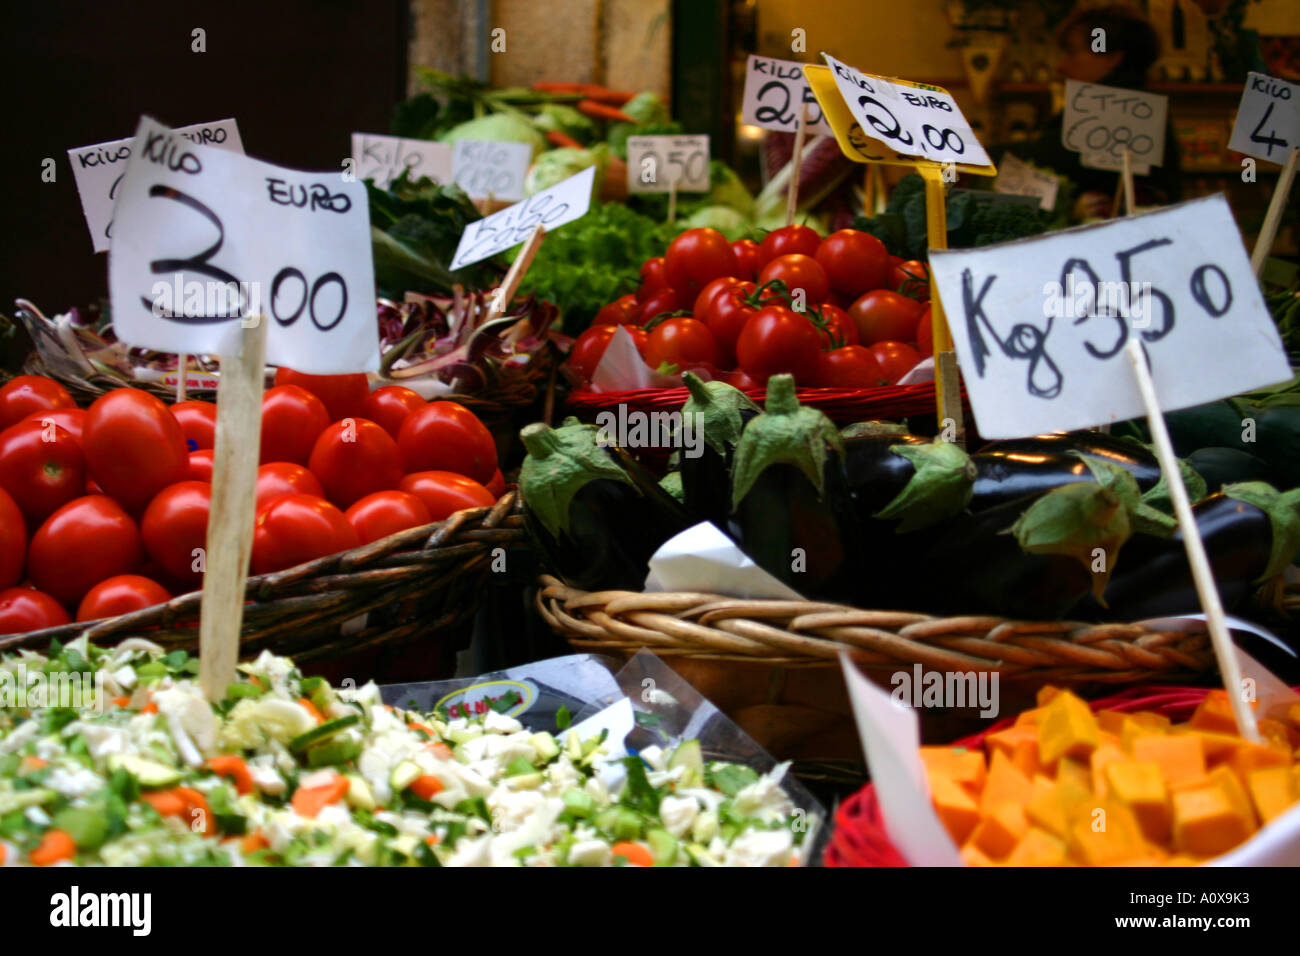 tomatoes salad eggplant aubergine and other  vegetables for sale in euros - Stock Image